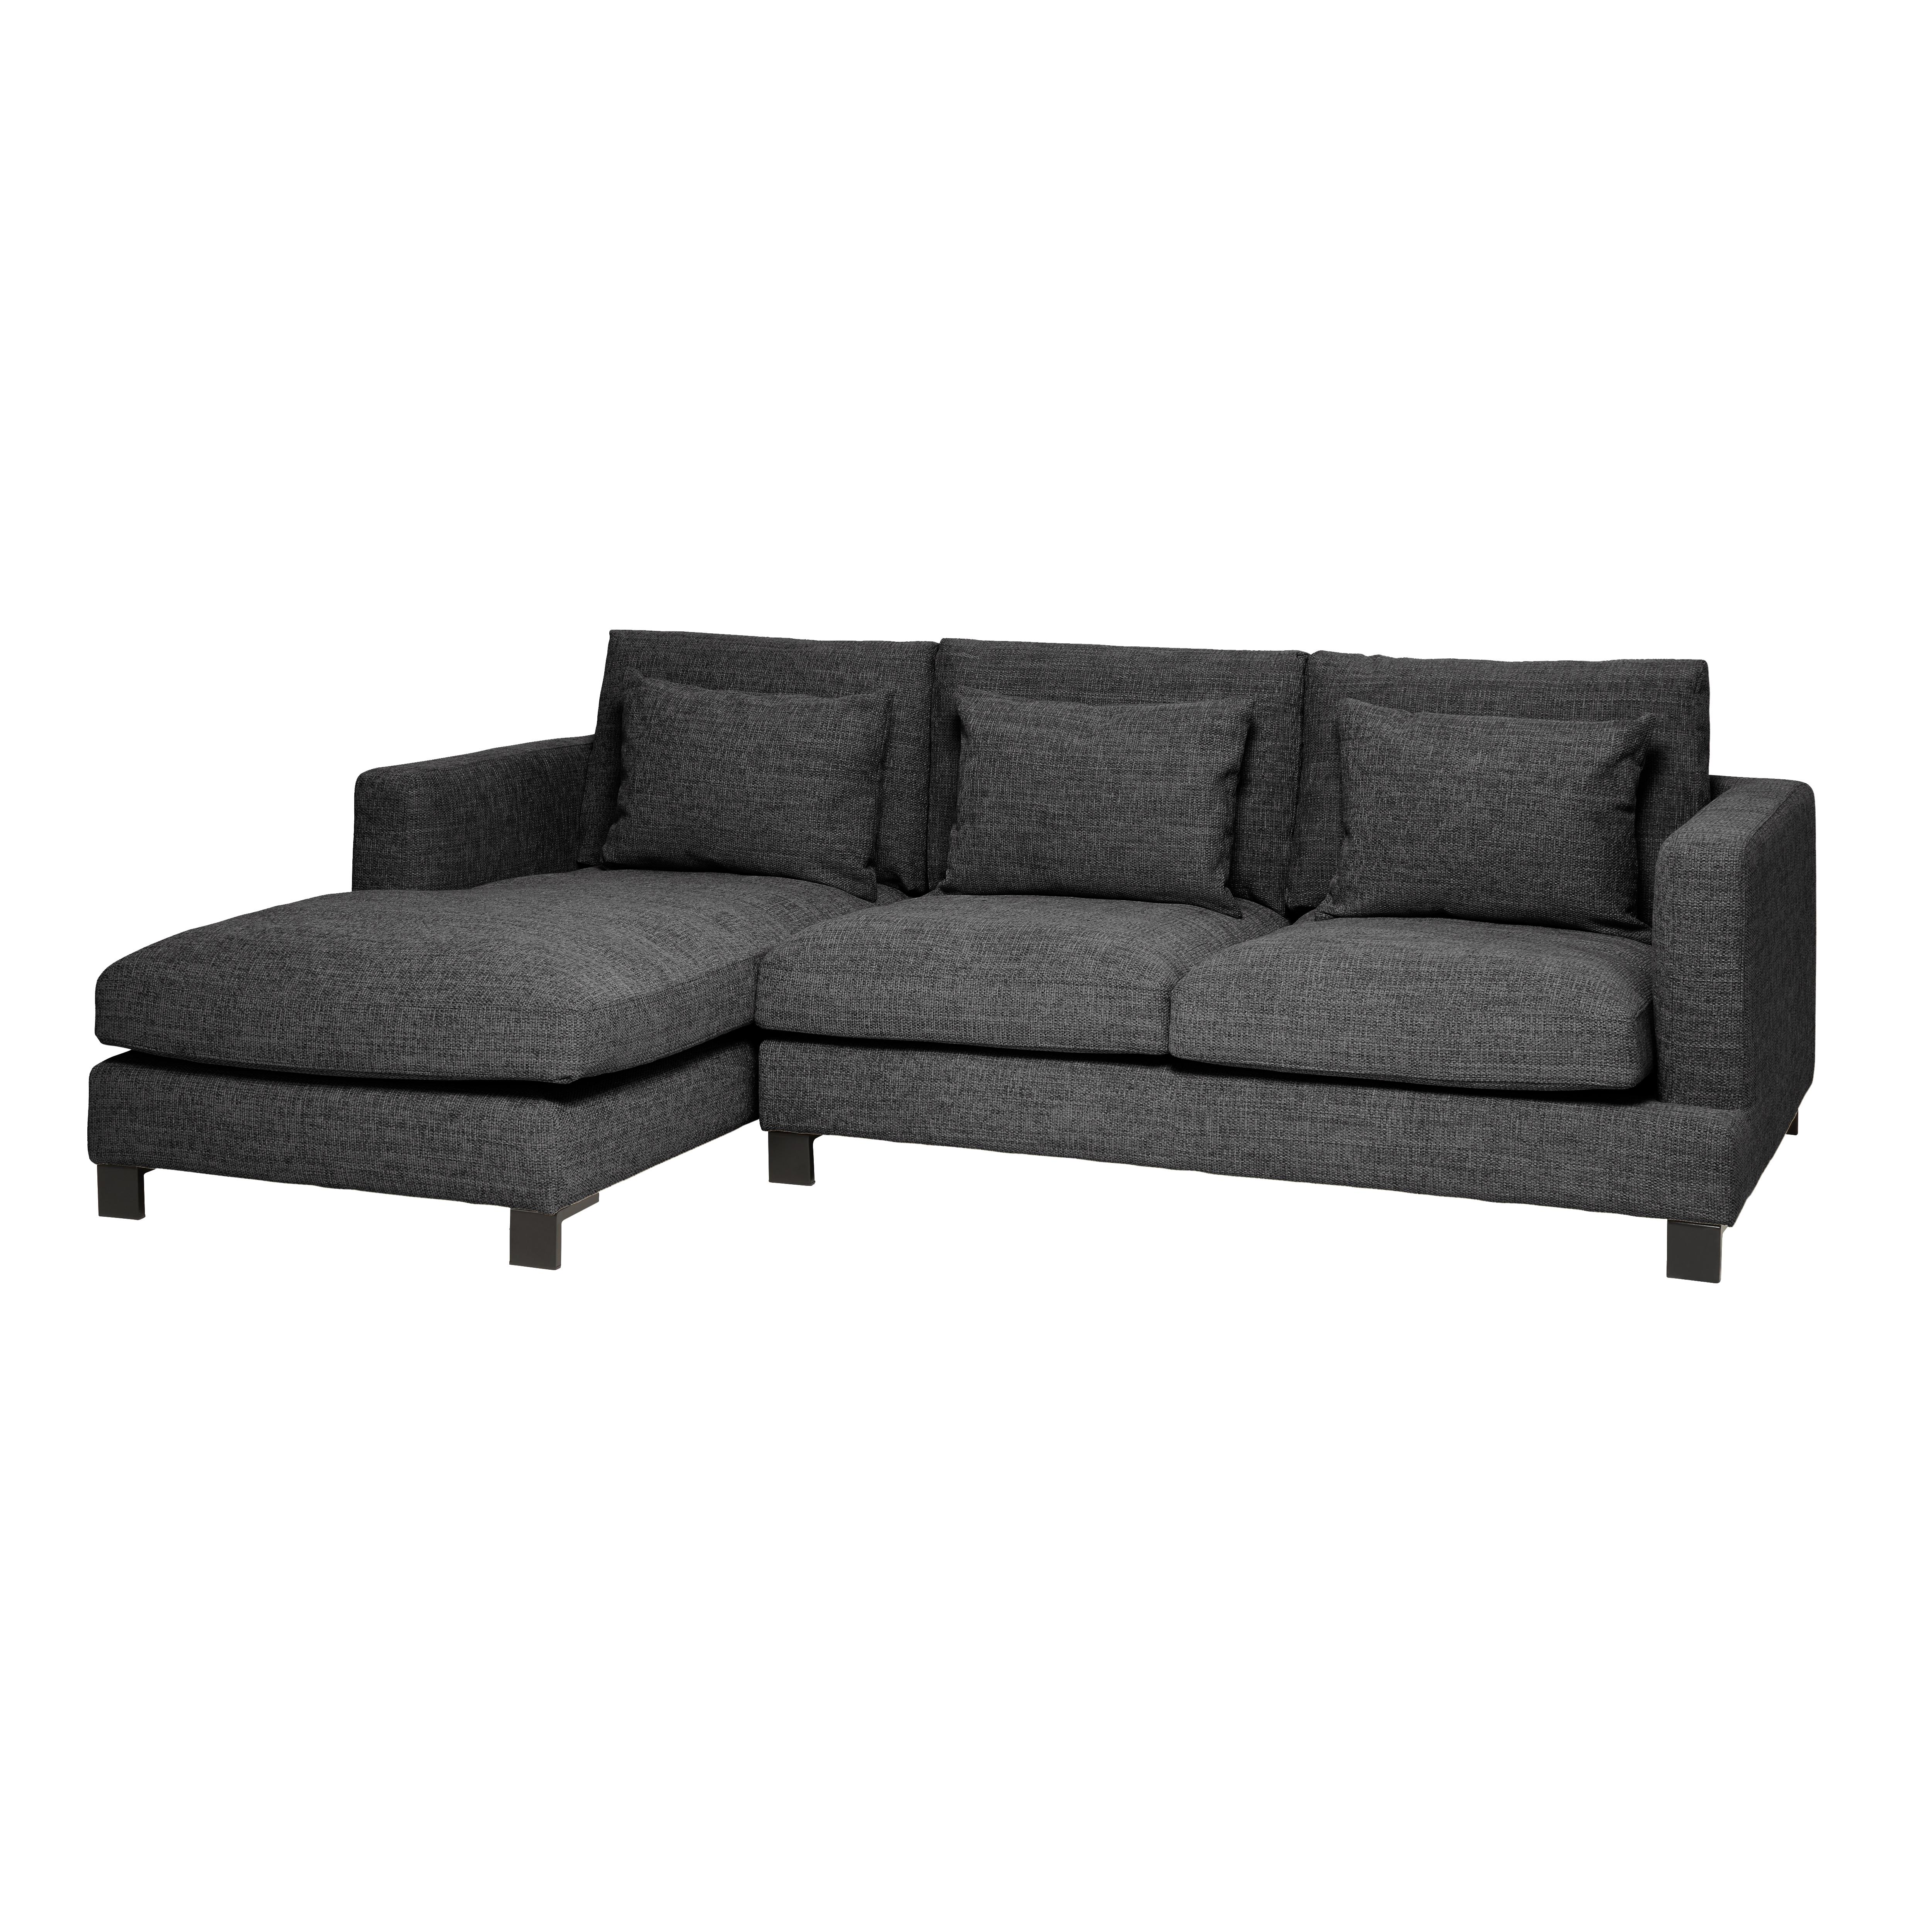 Lugano II left hand facing four seater chaise sofa callida charcoal